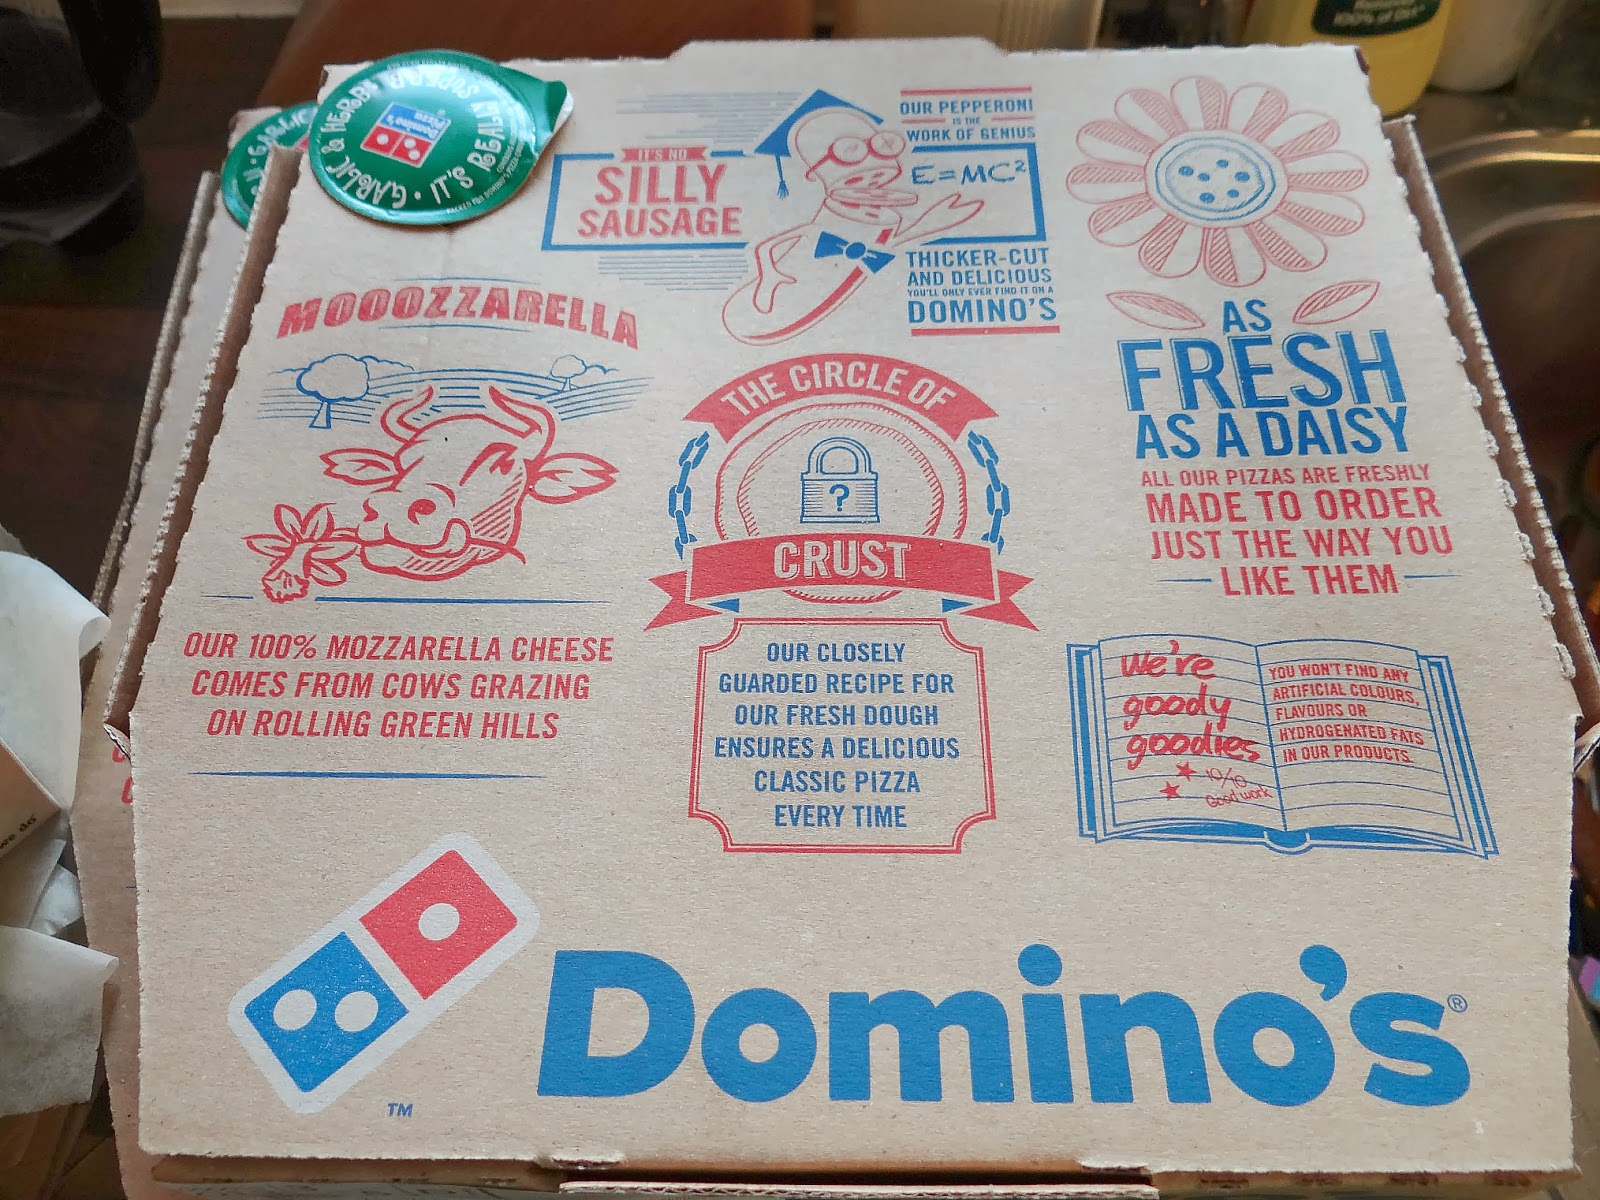 Dominos Pizza, fresh pizza, Pizza and movie